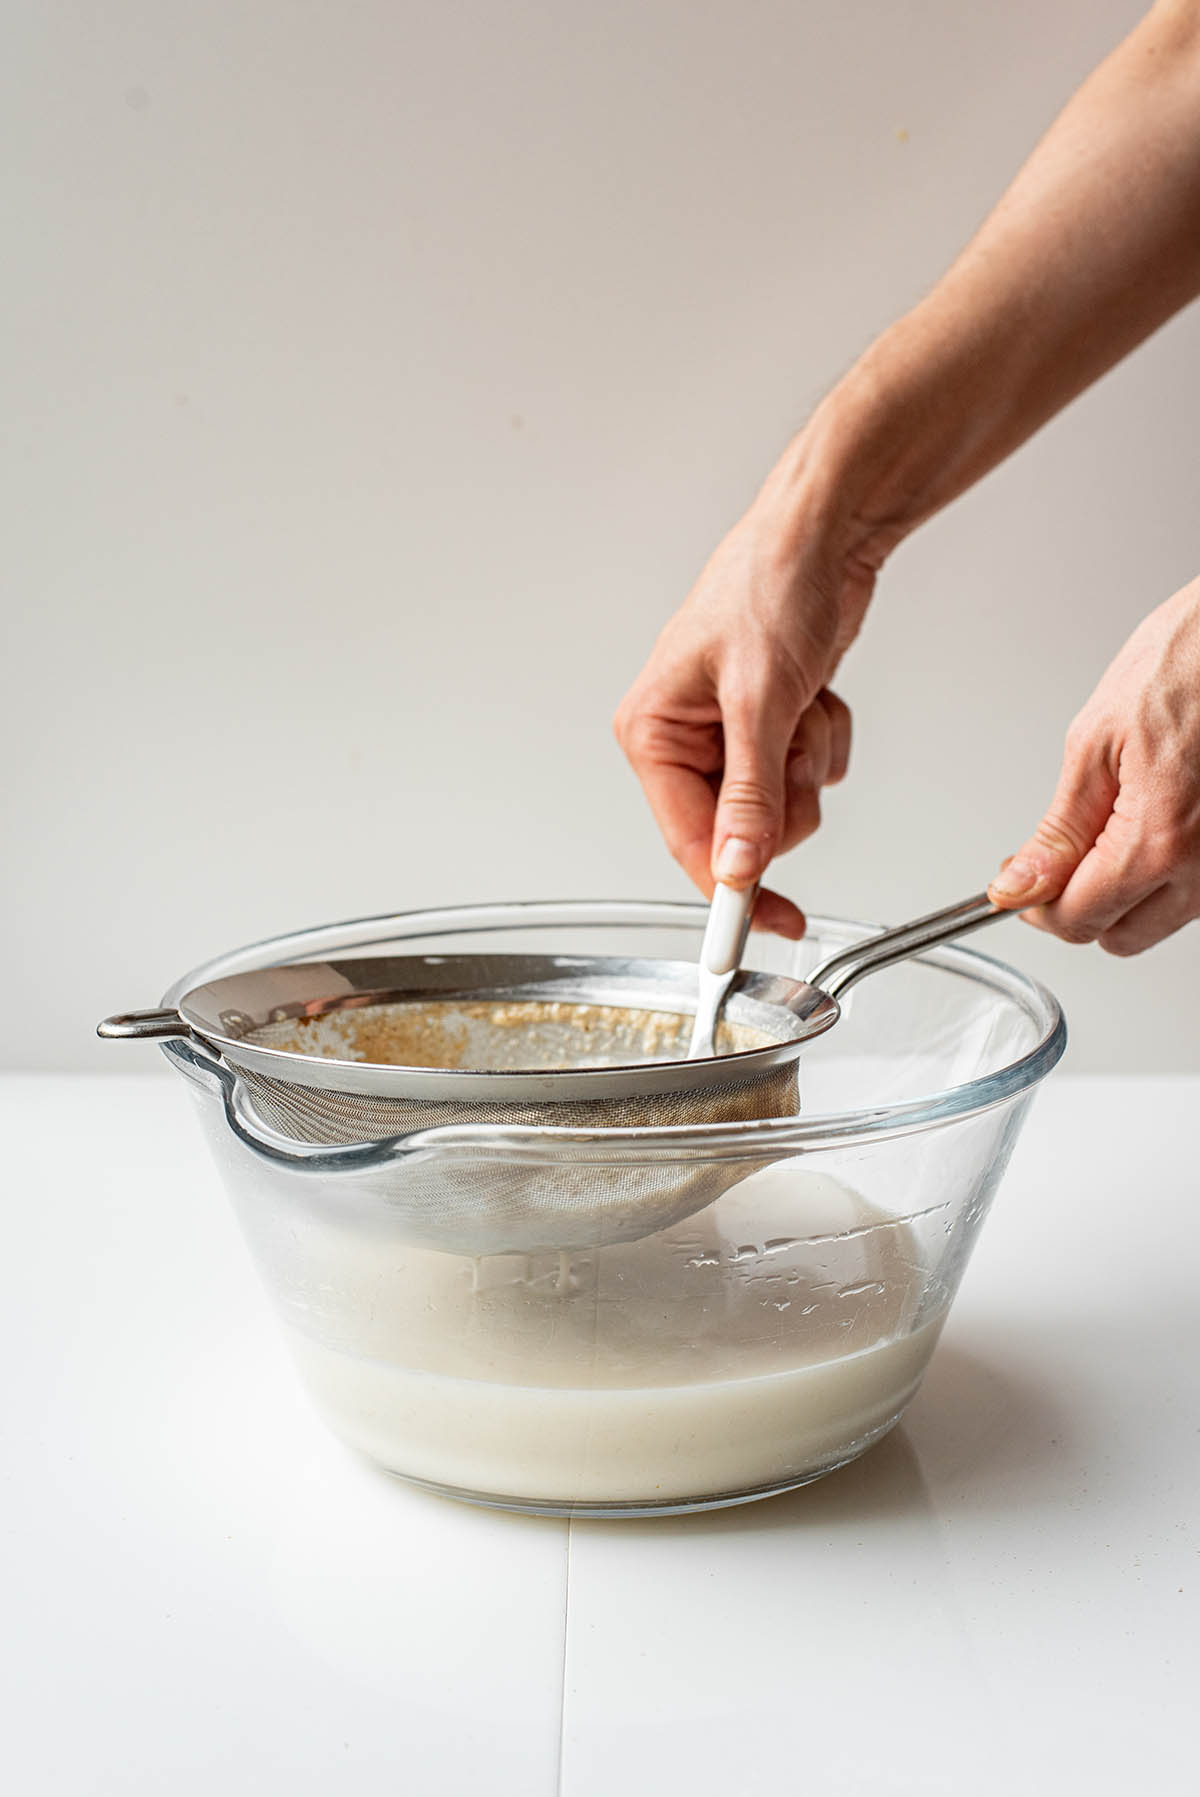 Woman's hands pushing oat milk through a strainer into a large bowl.